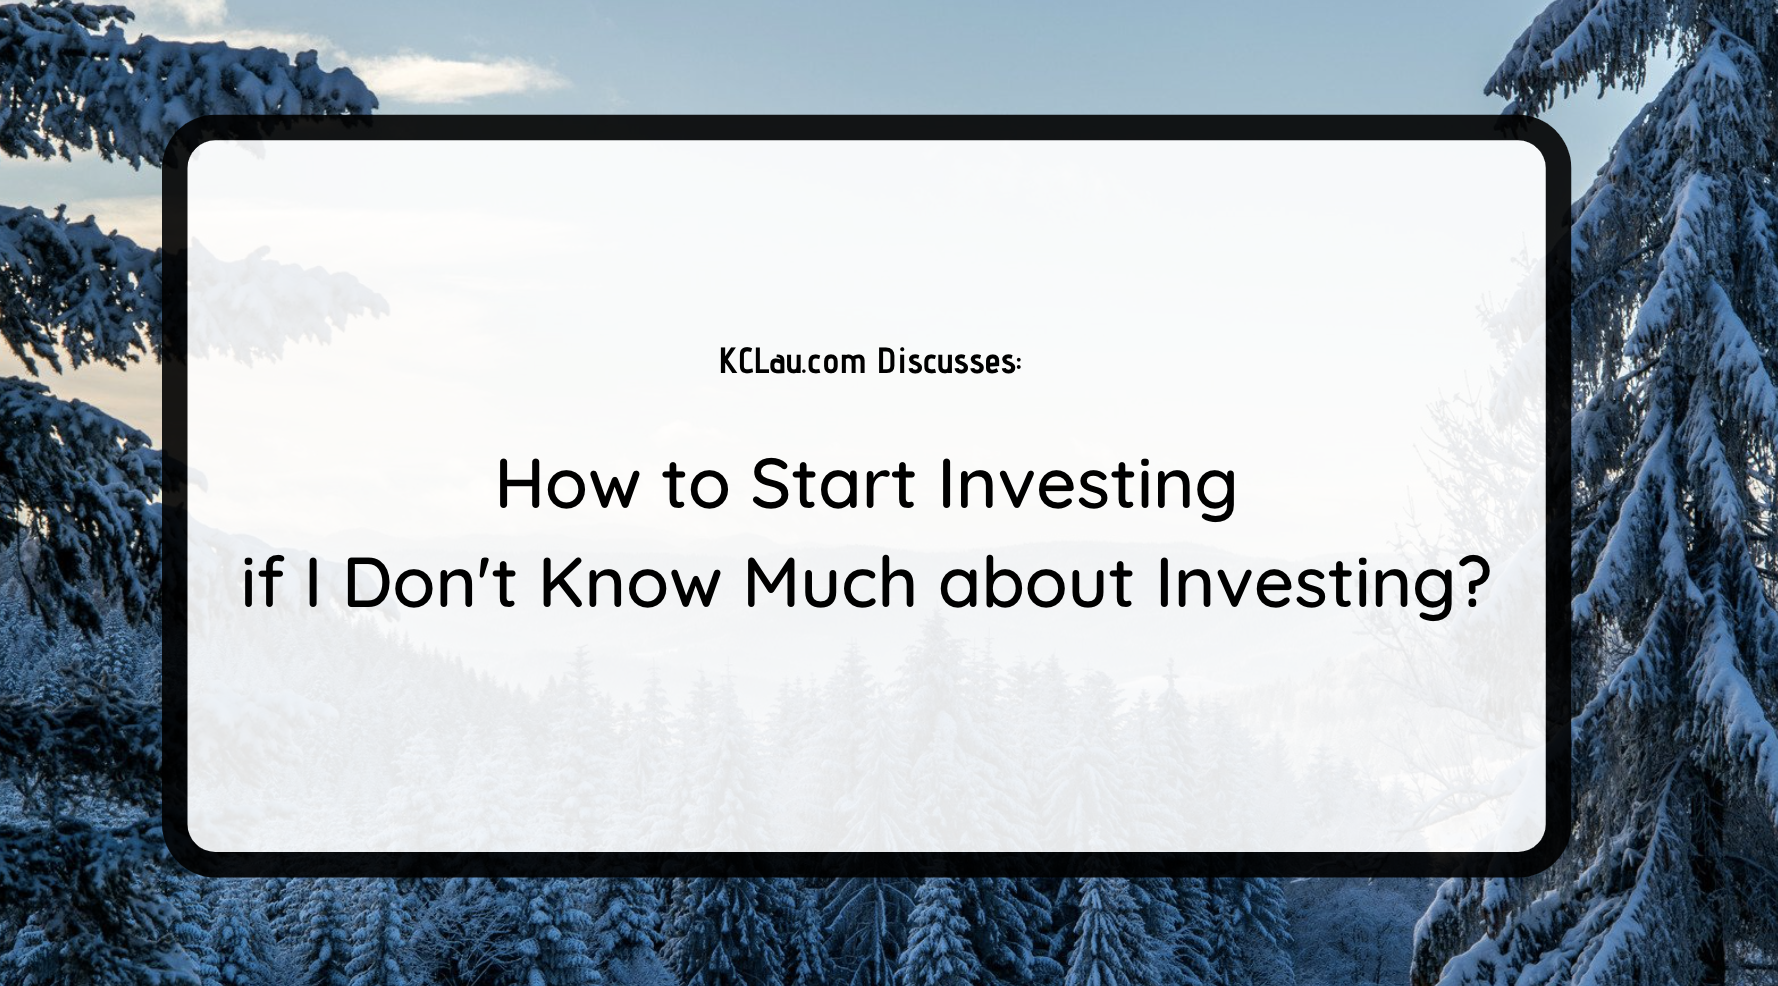 How to Start Investing if I Don't Know Much about Investing?